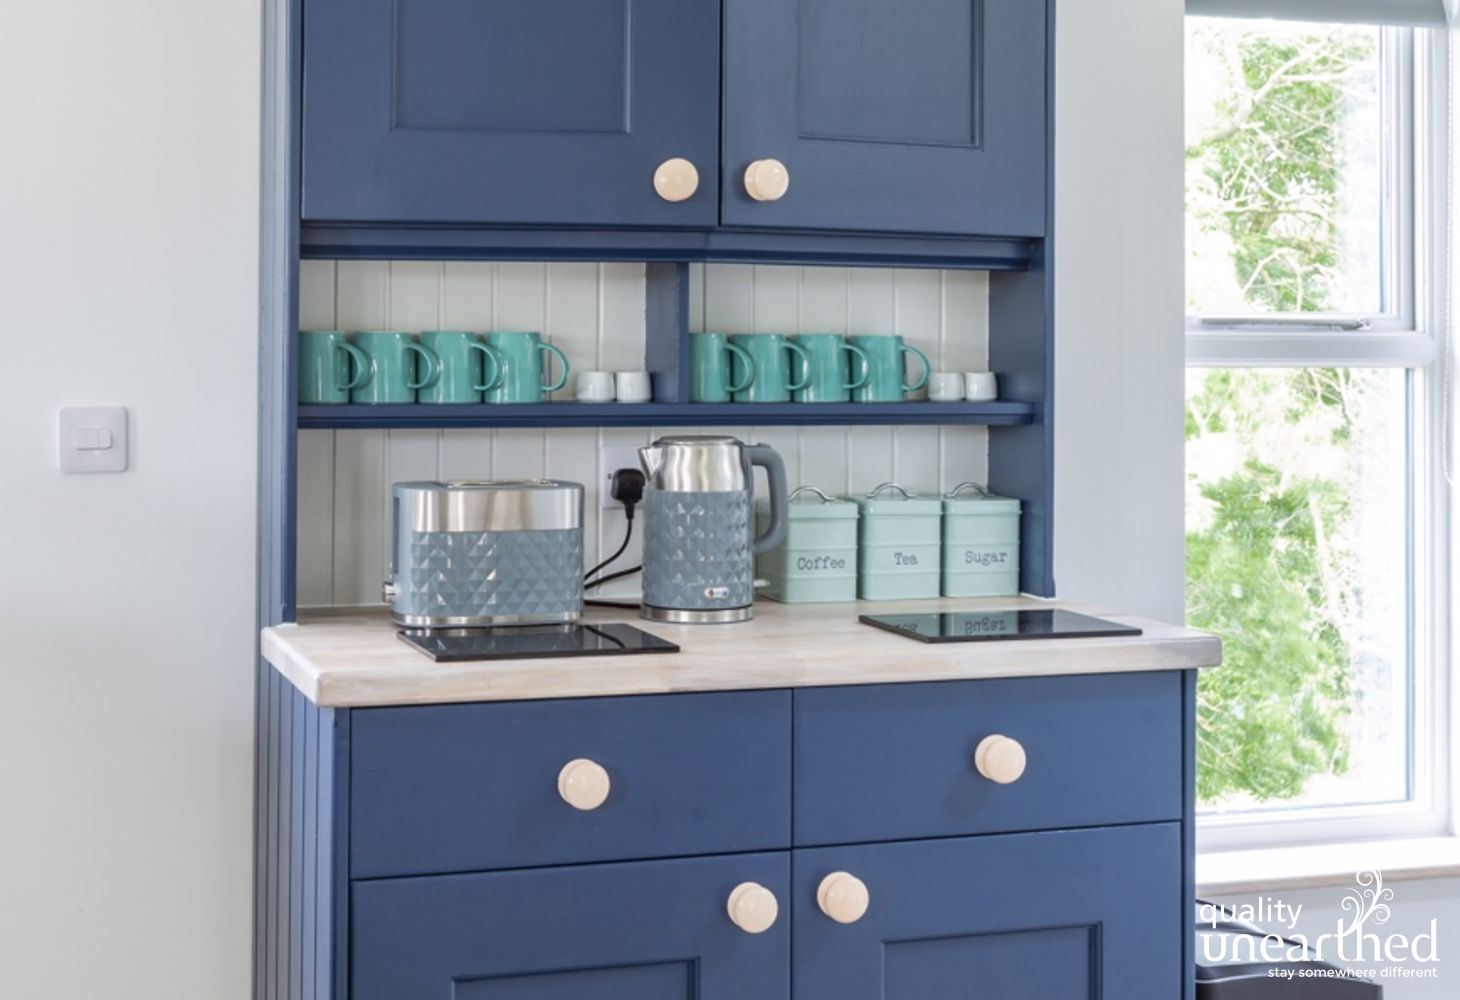 A welsh dresser painted in a classic farrow and ball shade sits in the kitchen of the luxury wooden lodge